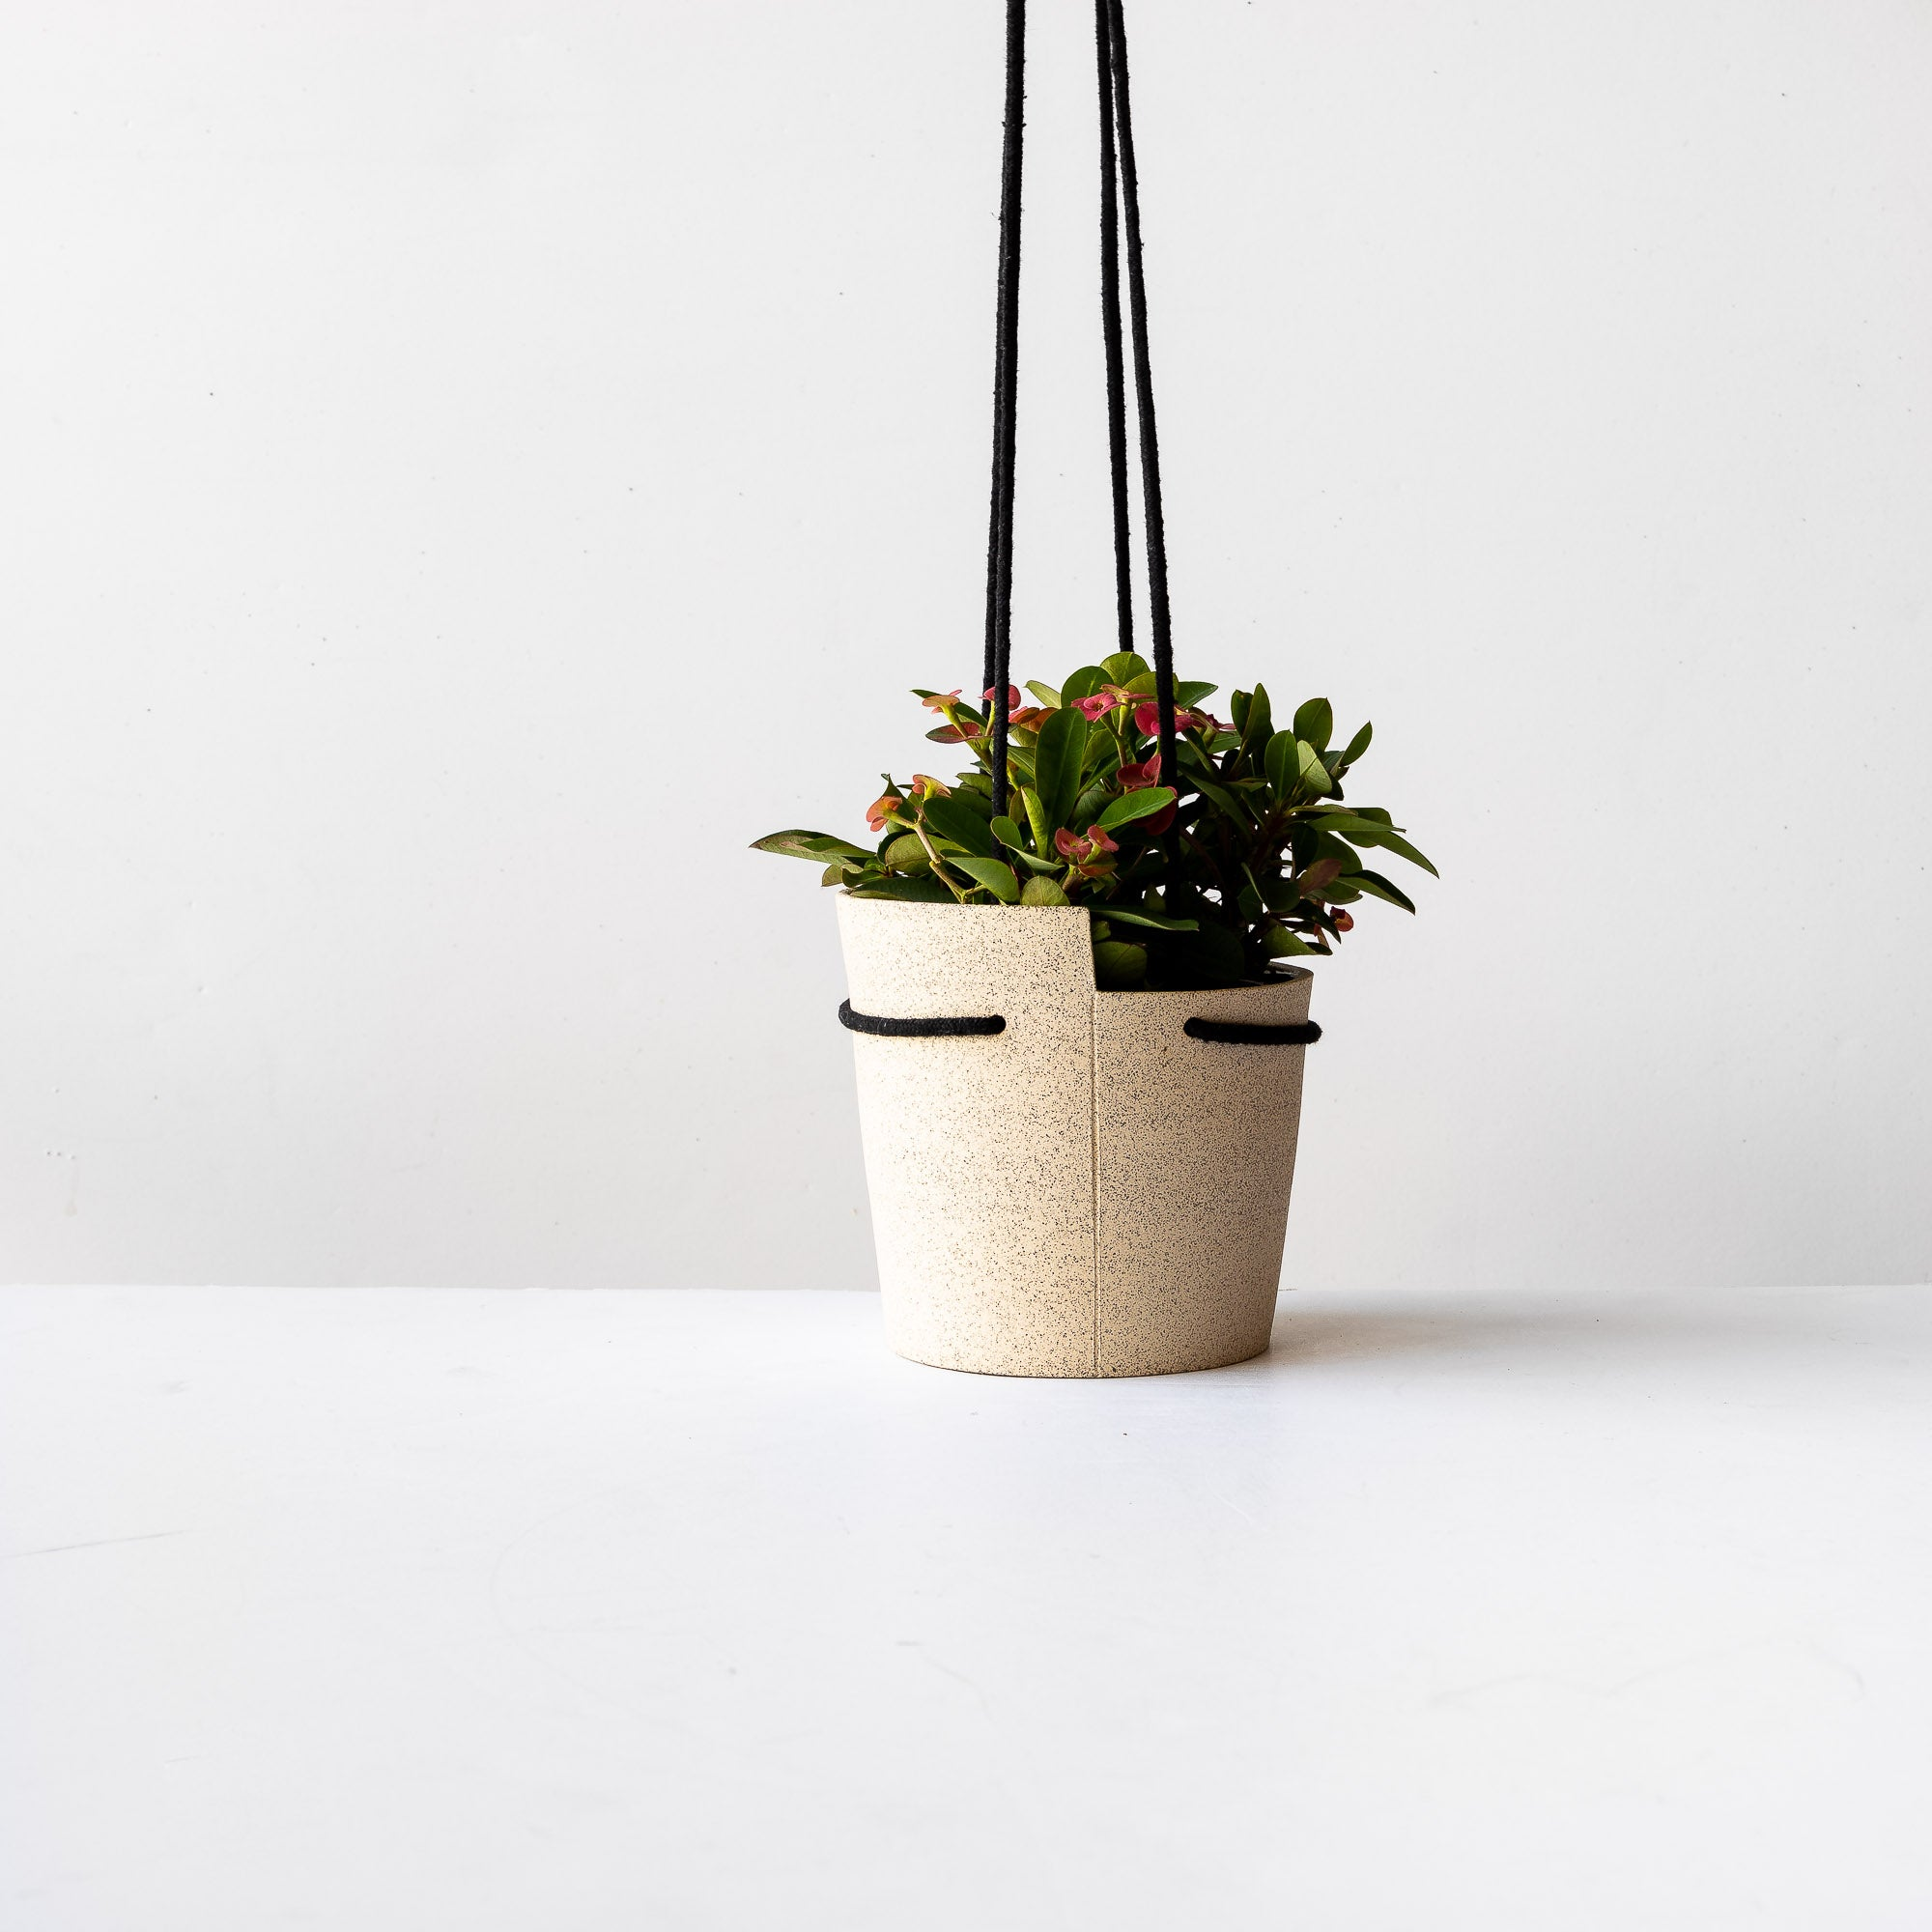 Small Beige Speckled Stoneware Hanging Planter With Plant - Sold by Chic & Basta